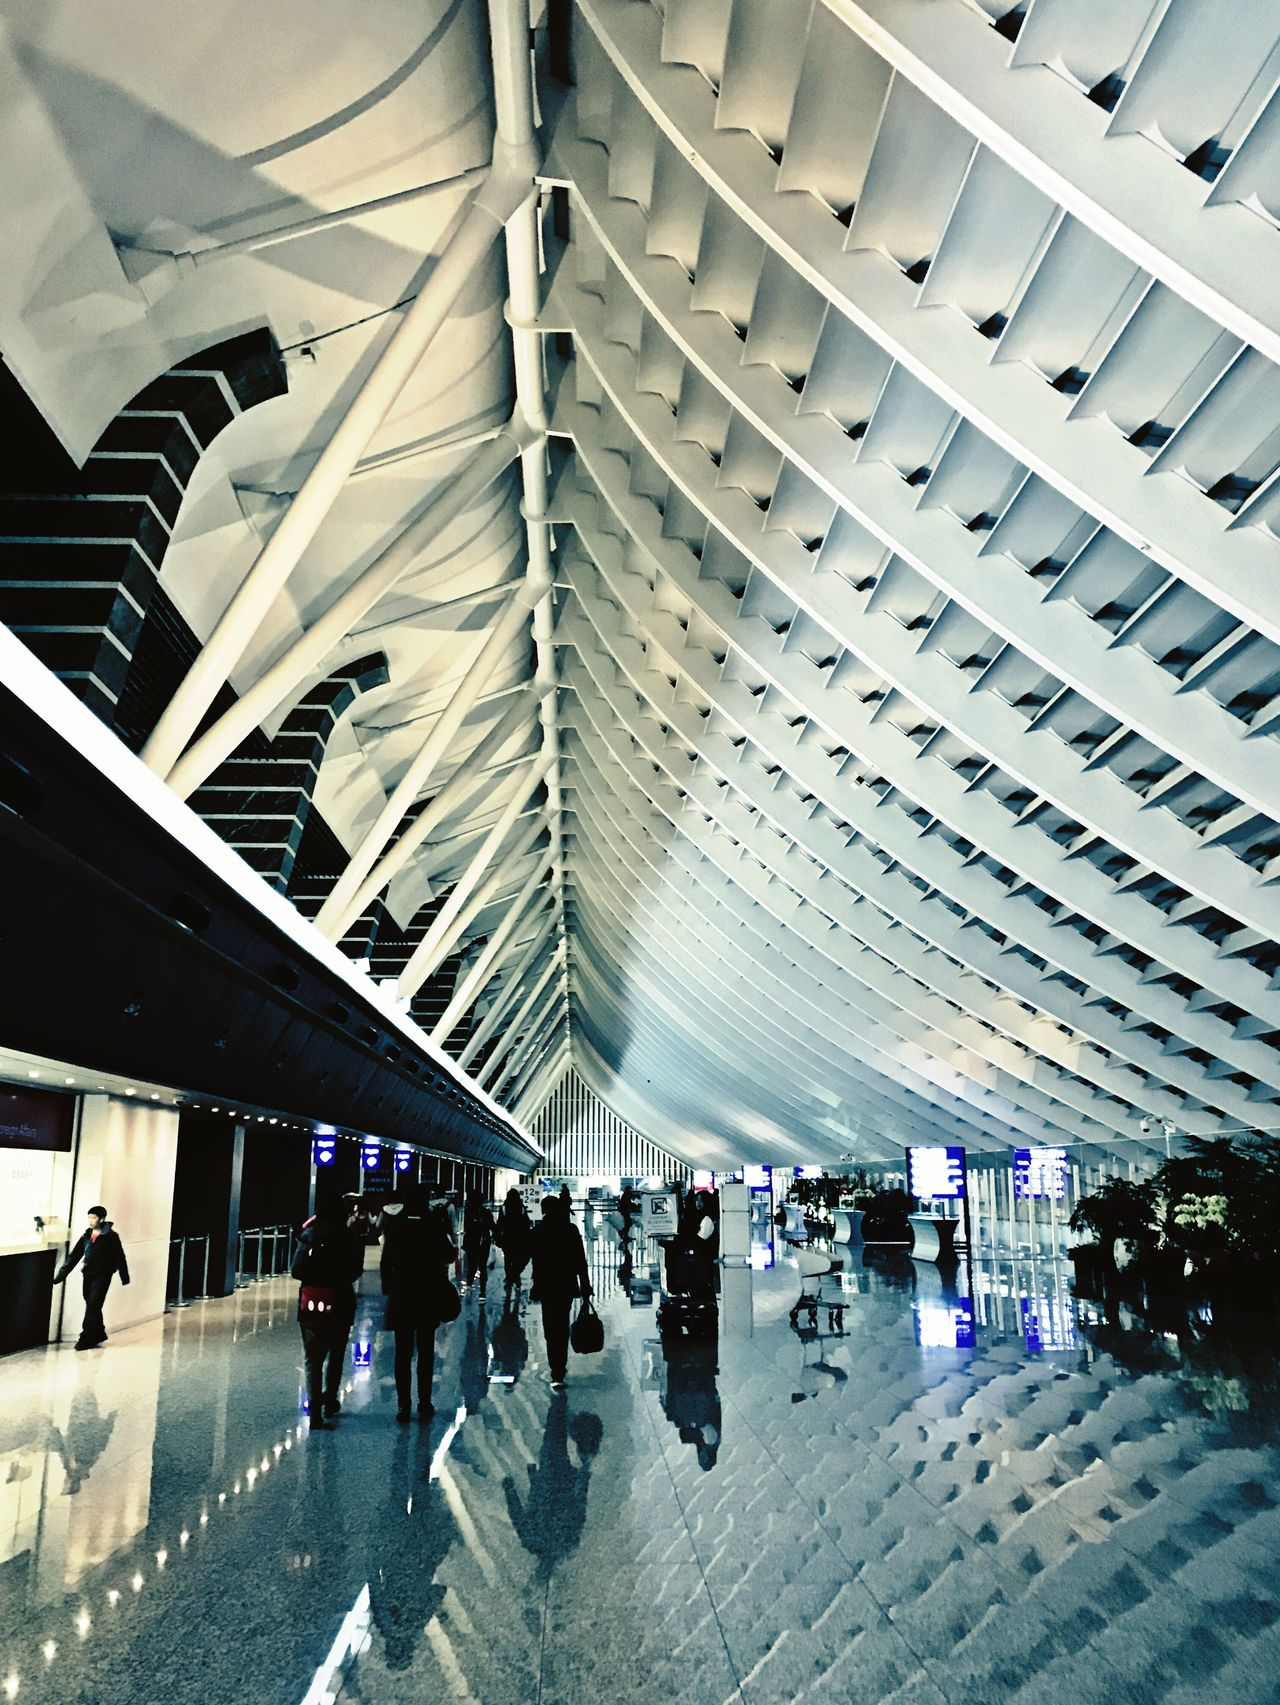 Large Group Of People Travel Architecture City Life Built Structure Modern Crowd Commuter Reflection Real People People Travel Destinations Futuristic Indoors  Journey Public Transportation Traveling Passenger Airport Airportphotography Taoyuan International Airport Taipei Taipei,Taiwan Taiwan Futuristic